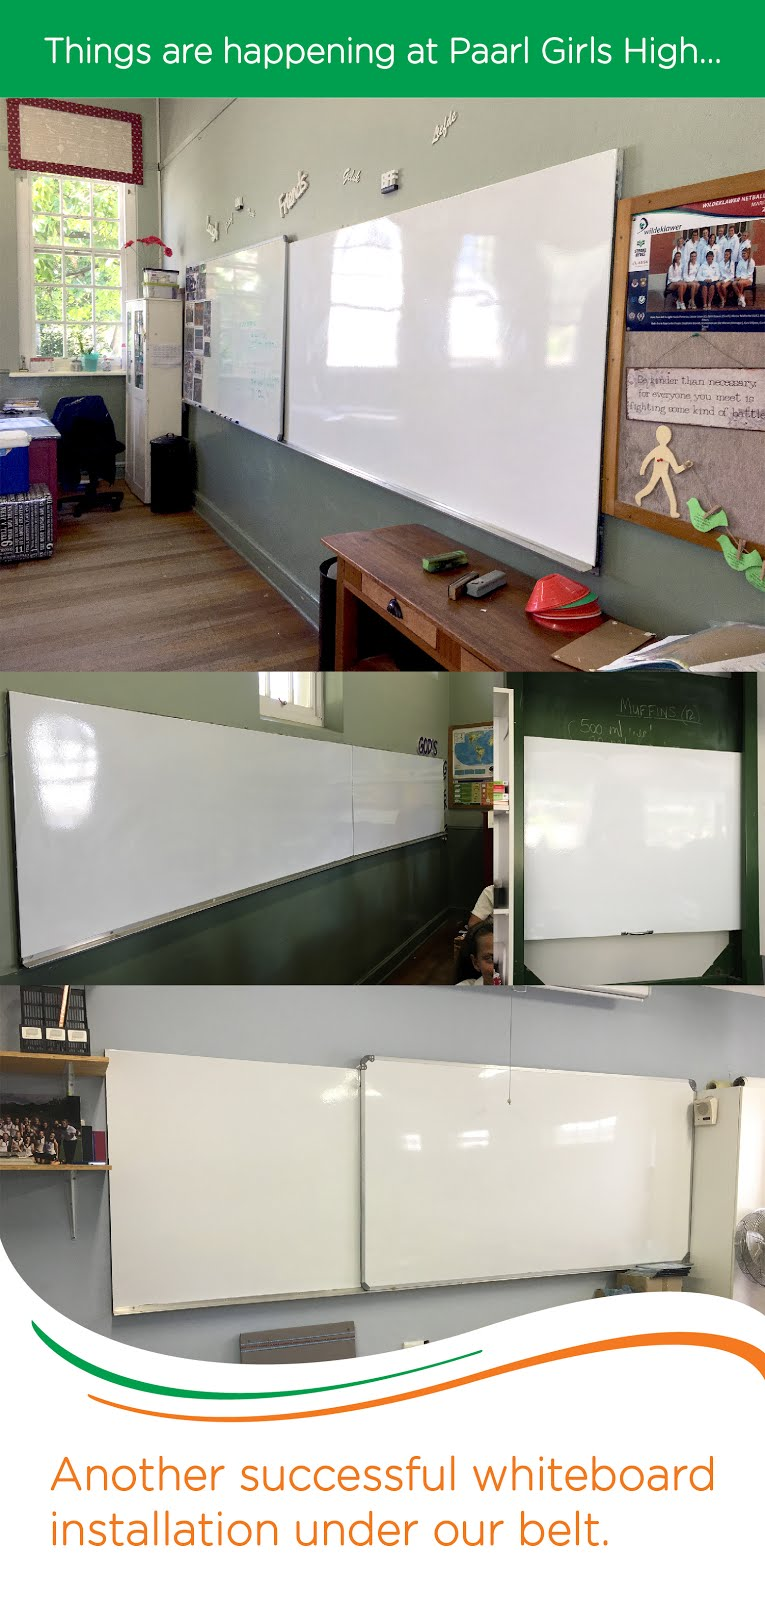 These where old Chalkboards and now they are fantastic NEW whiteboards for half the costs!!!